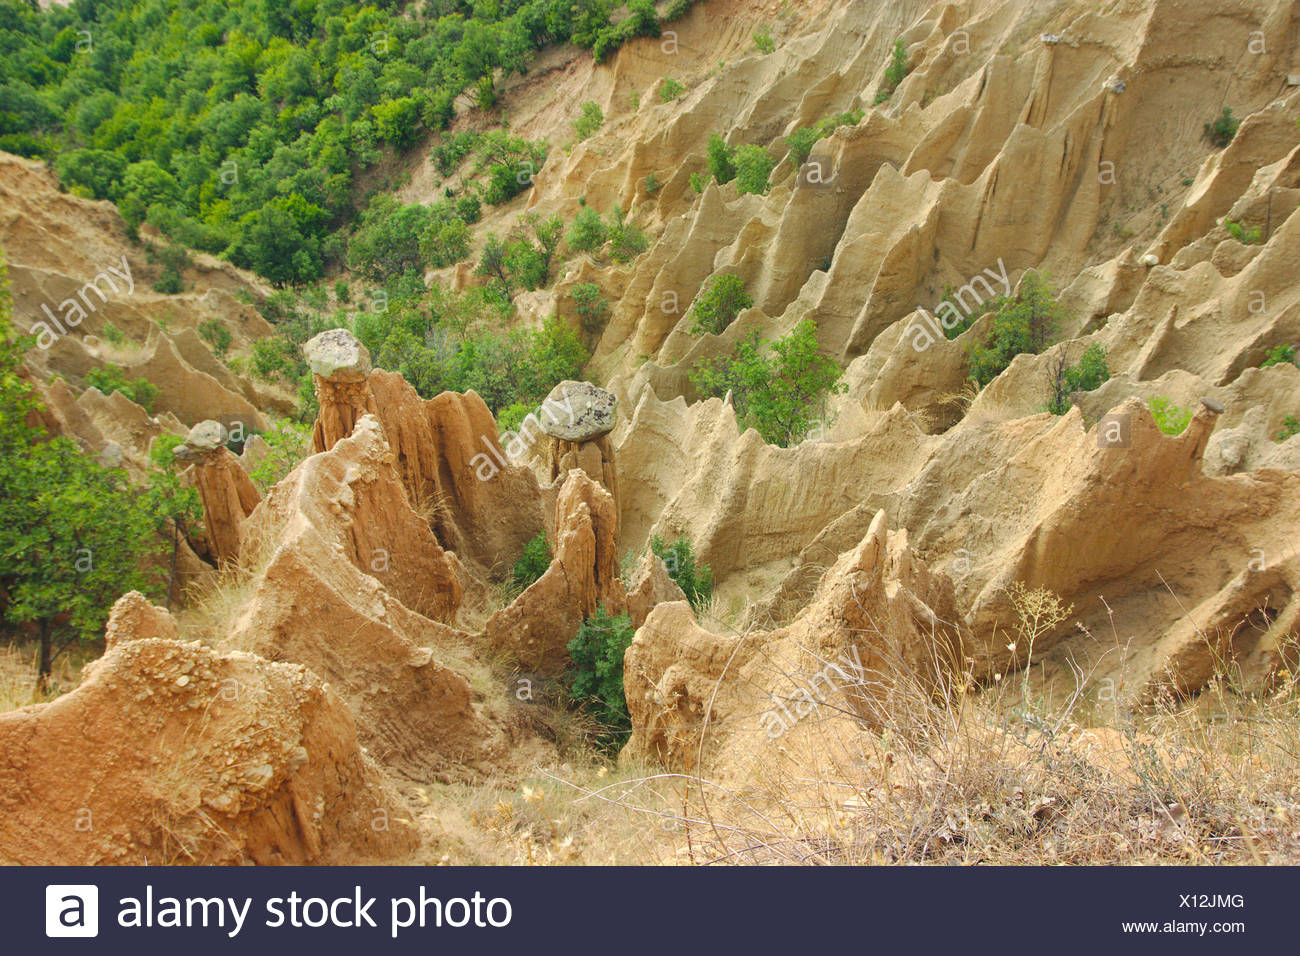 sandstone pyramids of Stob, Bulgaria, Kapatishkiya, Naturpark Rila-Kloster Stock Photo